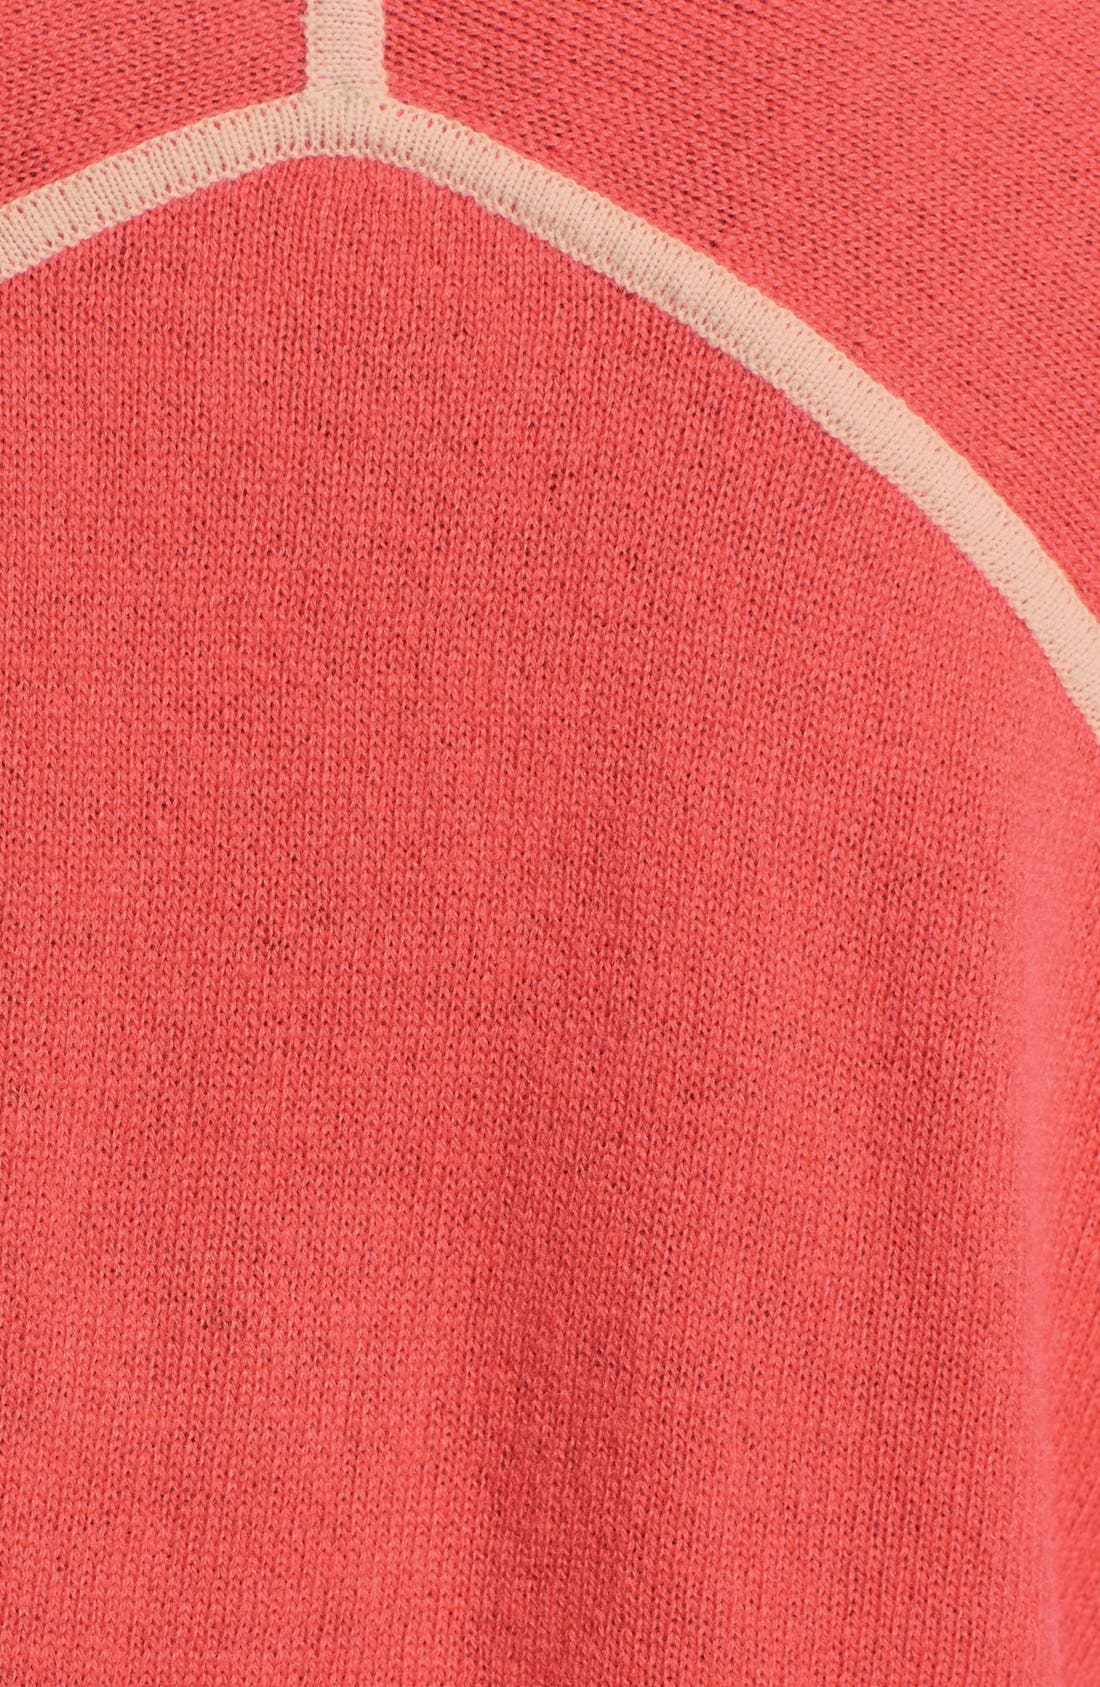 Alternate Image 3  - autumn cashmere Contrast Piping Side Slit Cashmere Tunic